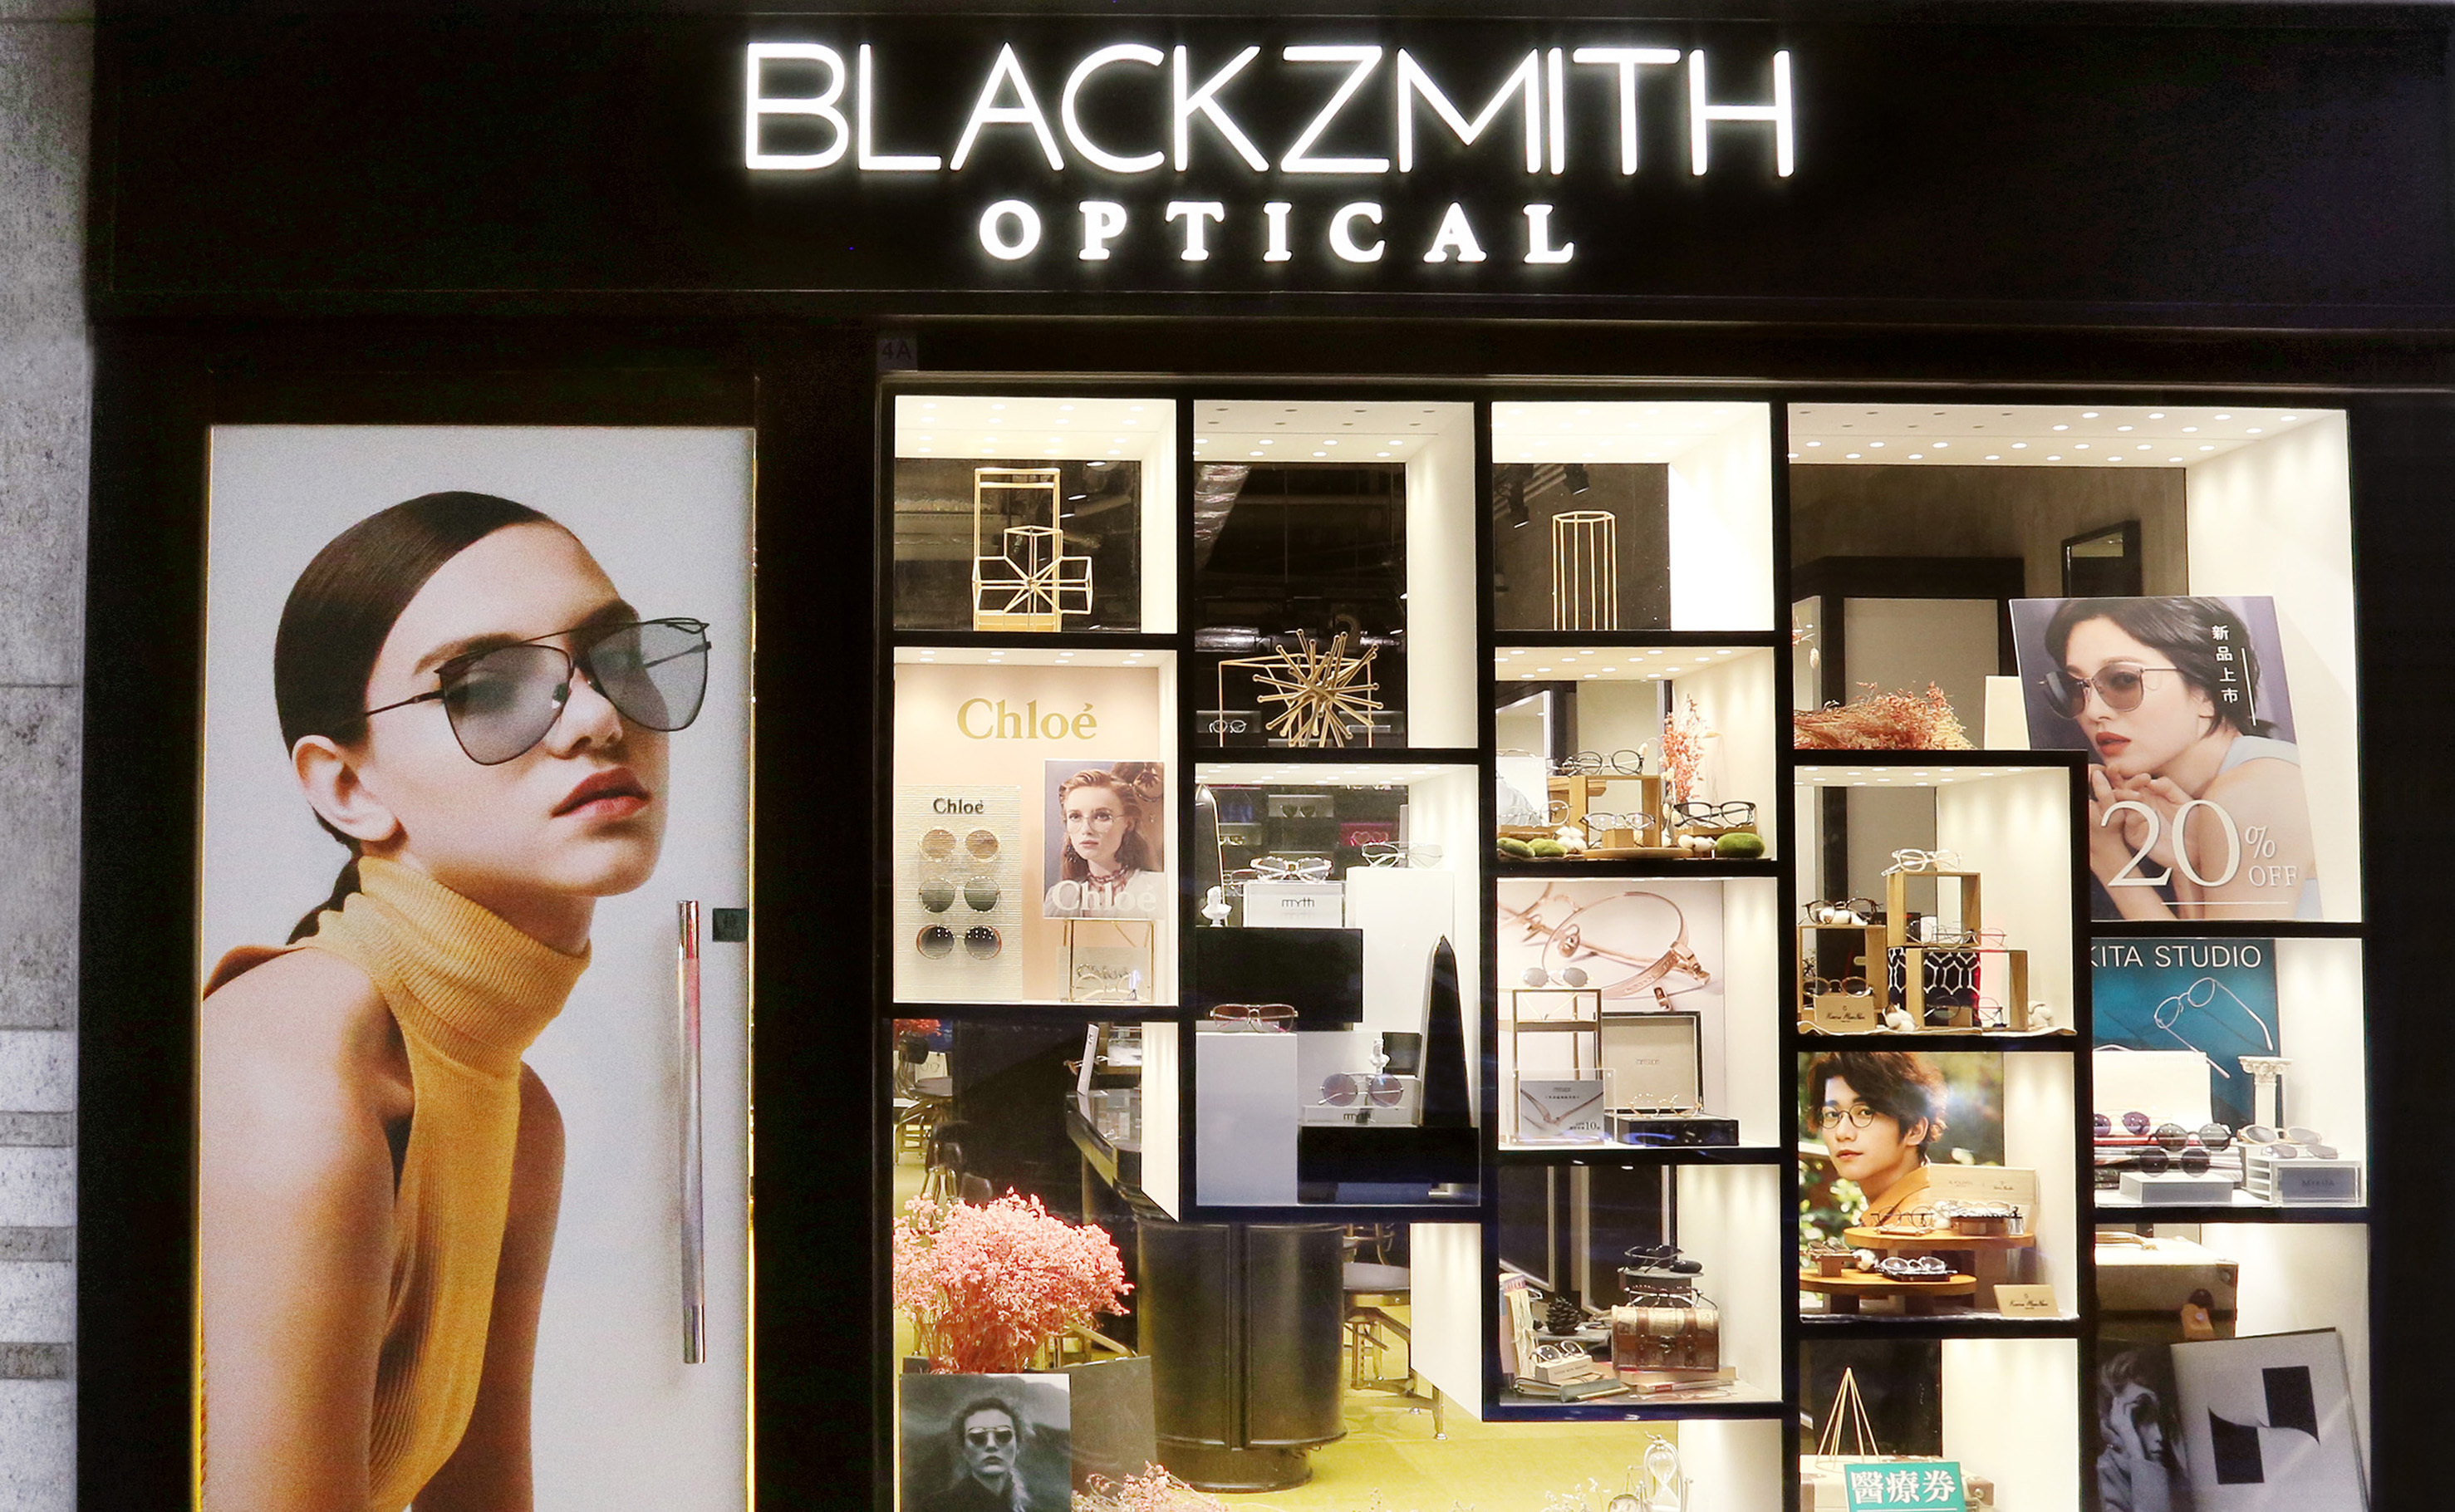 Blackzmith Optical